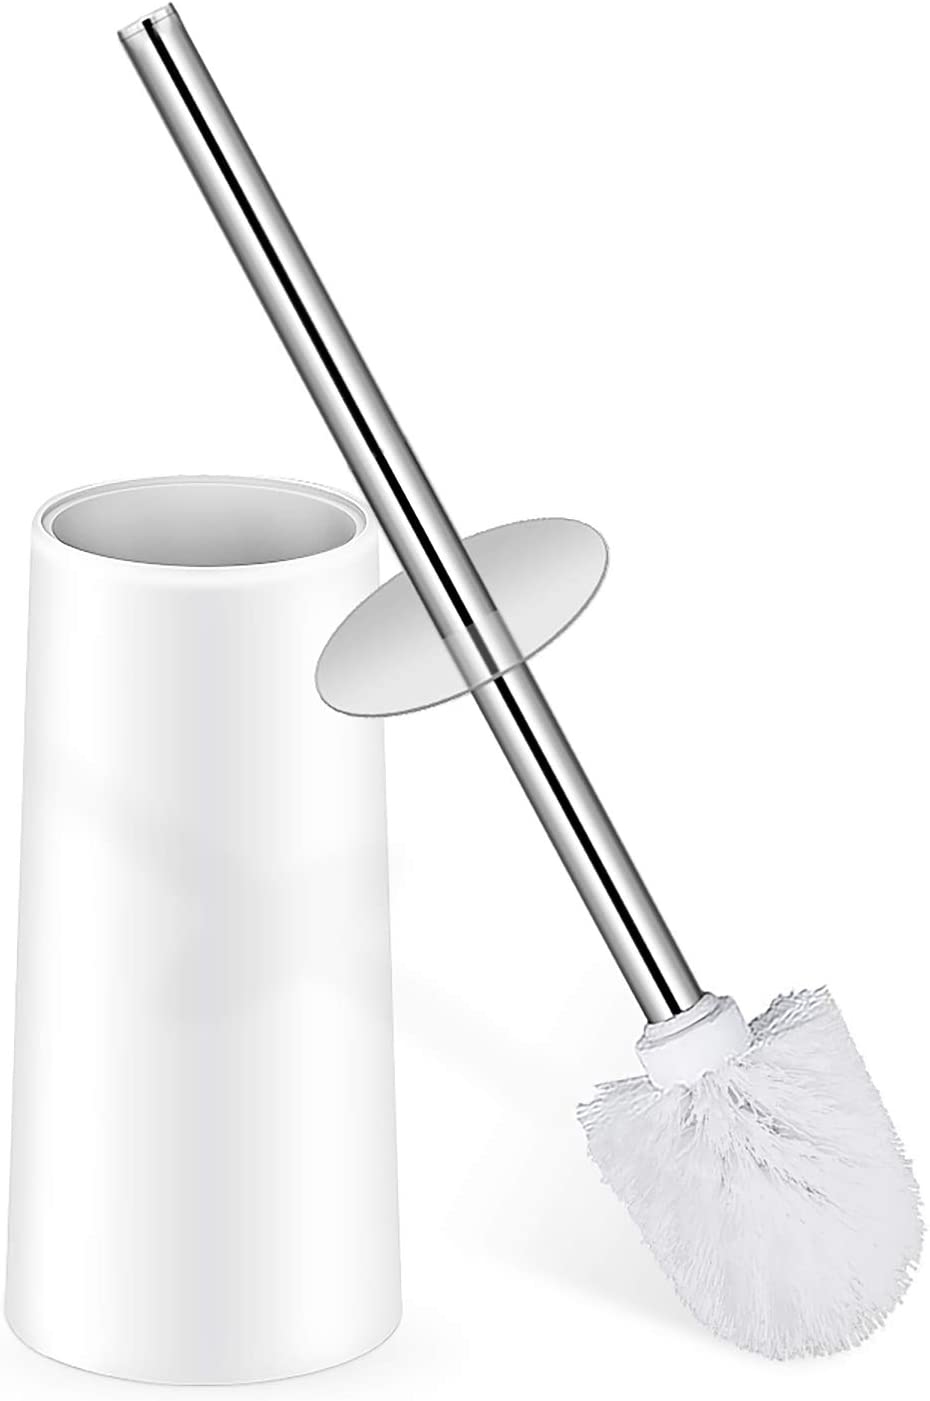 Toilet Brush, Toilet Brush with Holder, Toilet Bowl Brush with Stainless Steel Handle Durable Bristles Deep Cleaning Compact Bathroom Brush Save Space Good Grip Anti-Drip, White